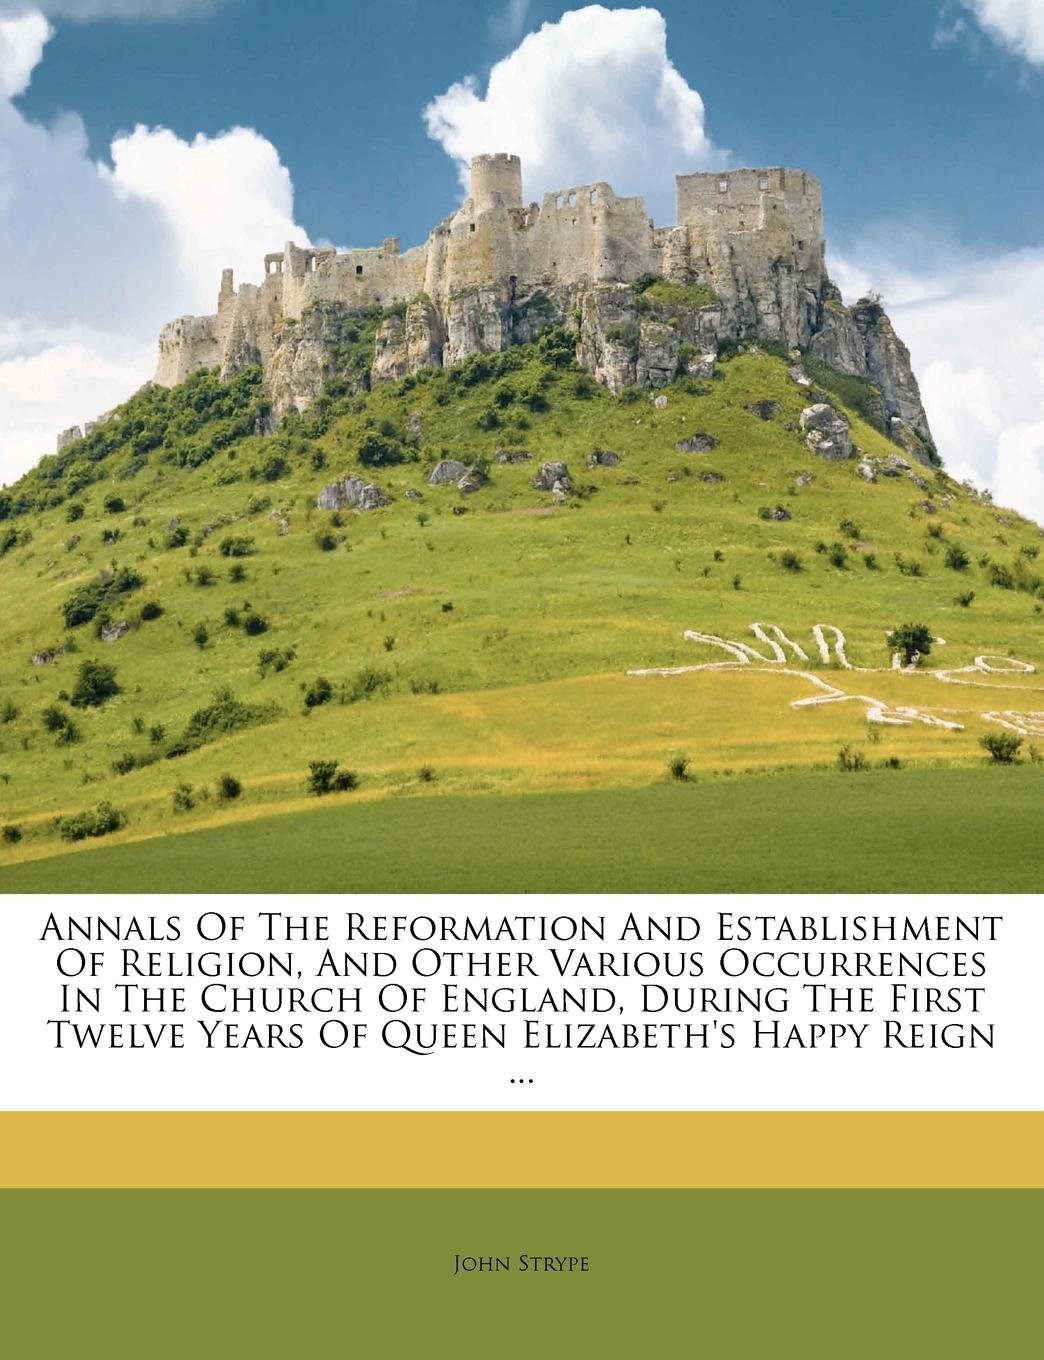 Annals Of The Reformation And Establishment Of Religion, And Other Various Occurrences In The Church Of England, During The First Twelve Years Of Queen Elizabeth's Happy Reign ... PDF